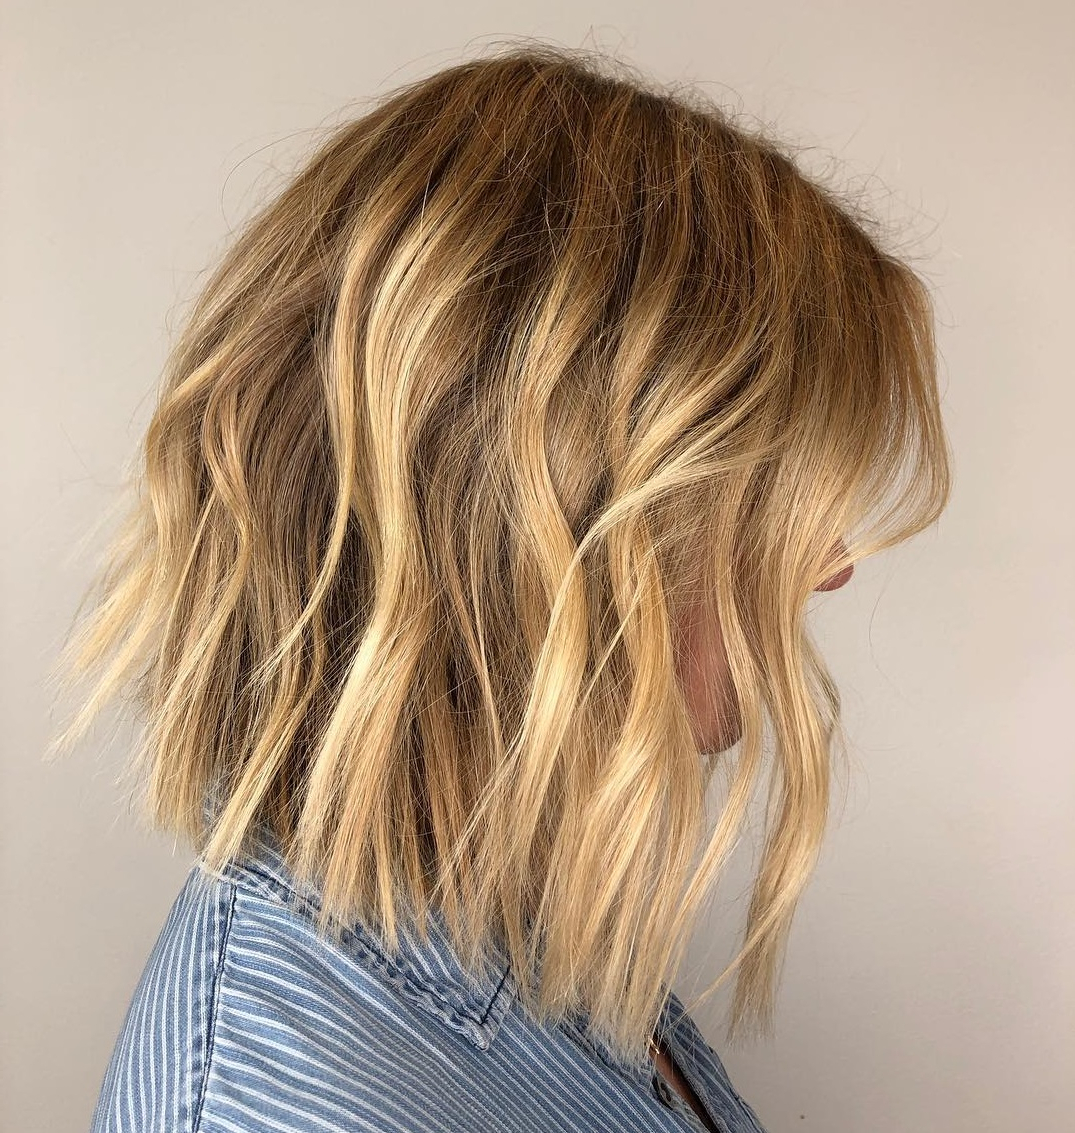 How To Pull Off Medium Length Haircuts And Hairstyles In 2019 Intended For Choppy Blonde Bob Hairstyles With Messy Waves (View 16 of 20)